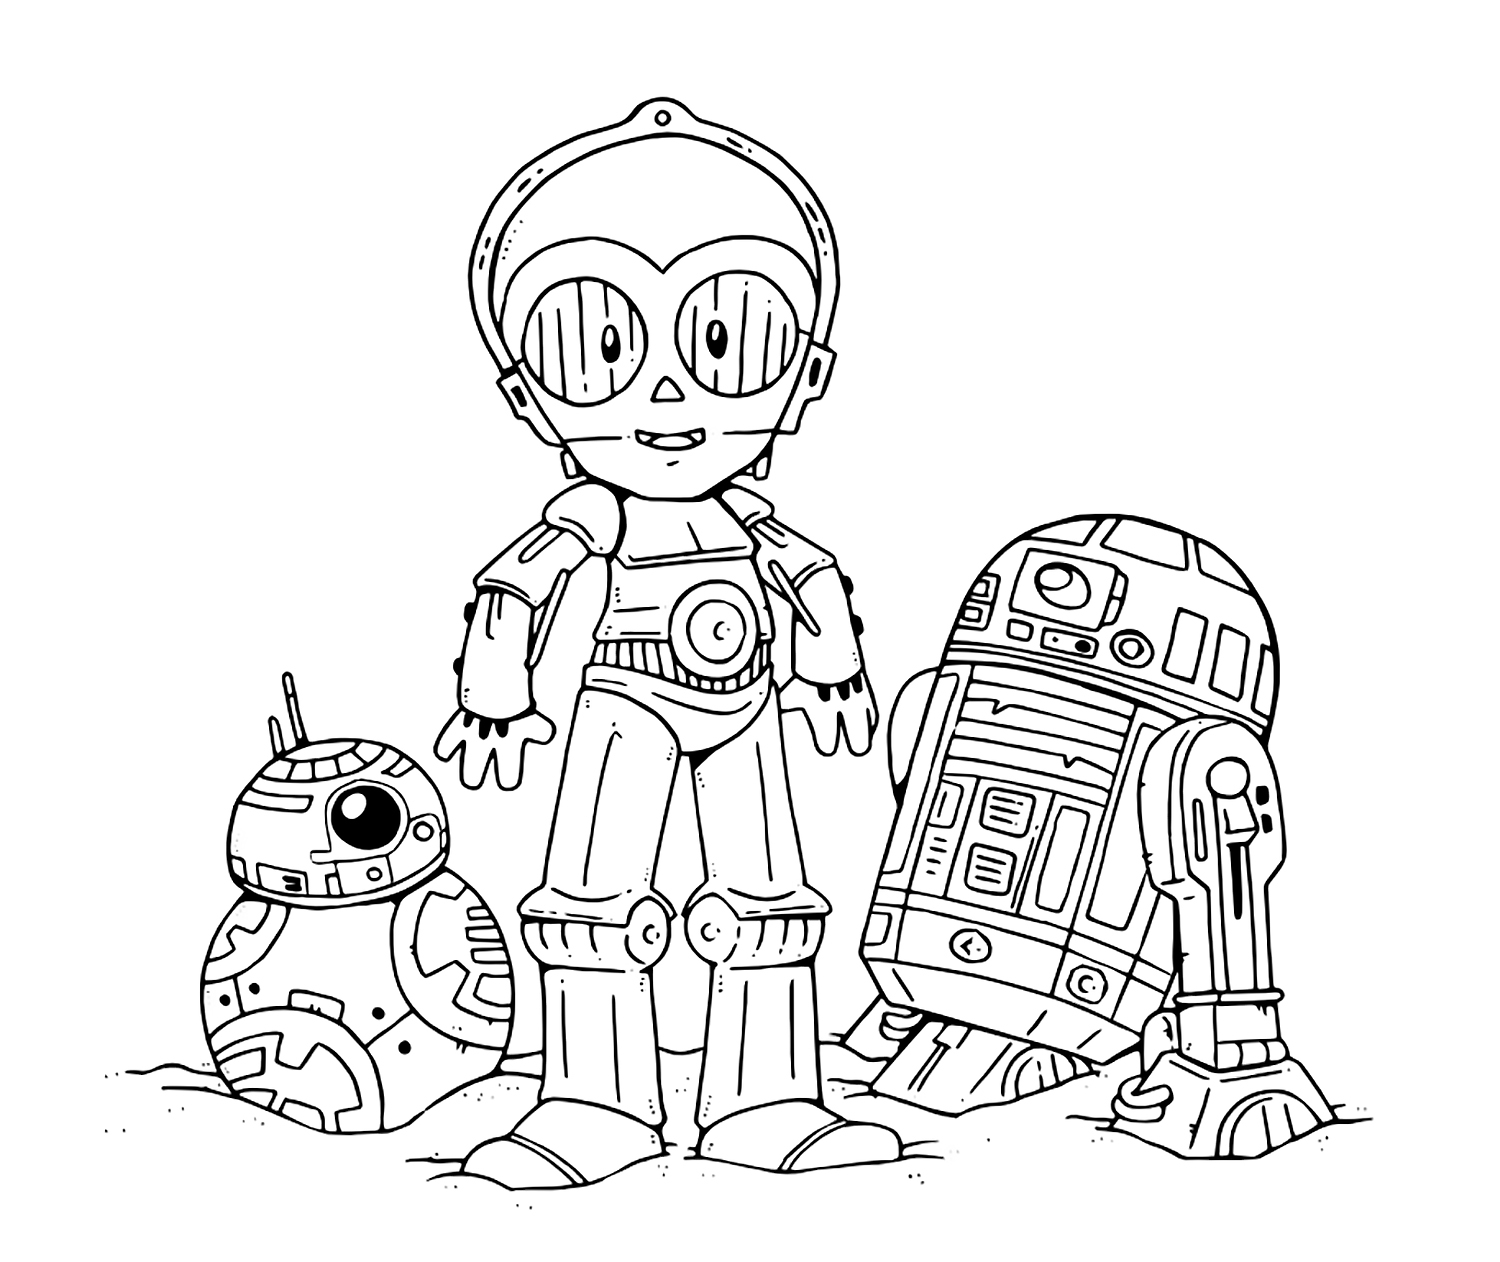 star wars colouring for kids storm trooper coloring page in 2020 star wars coloring wars kids for colouring star